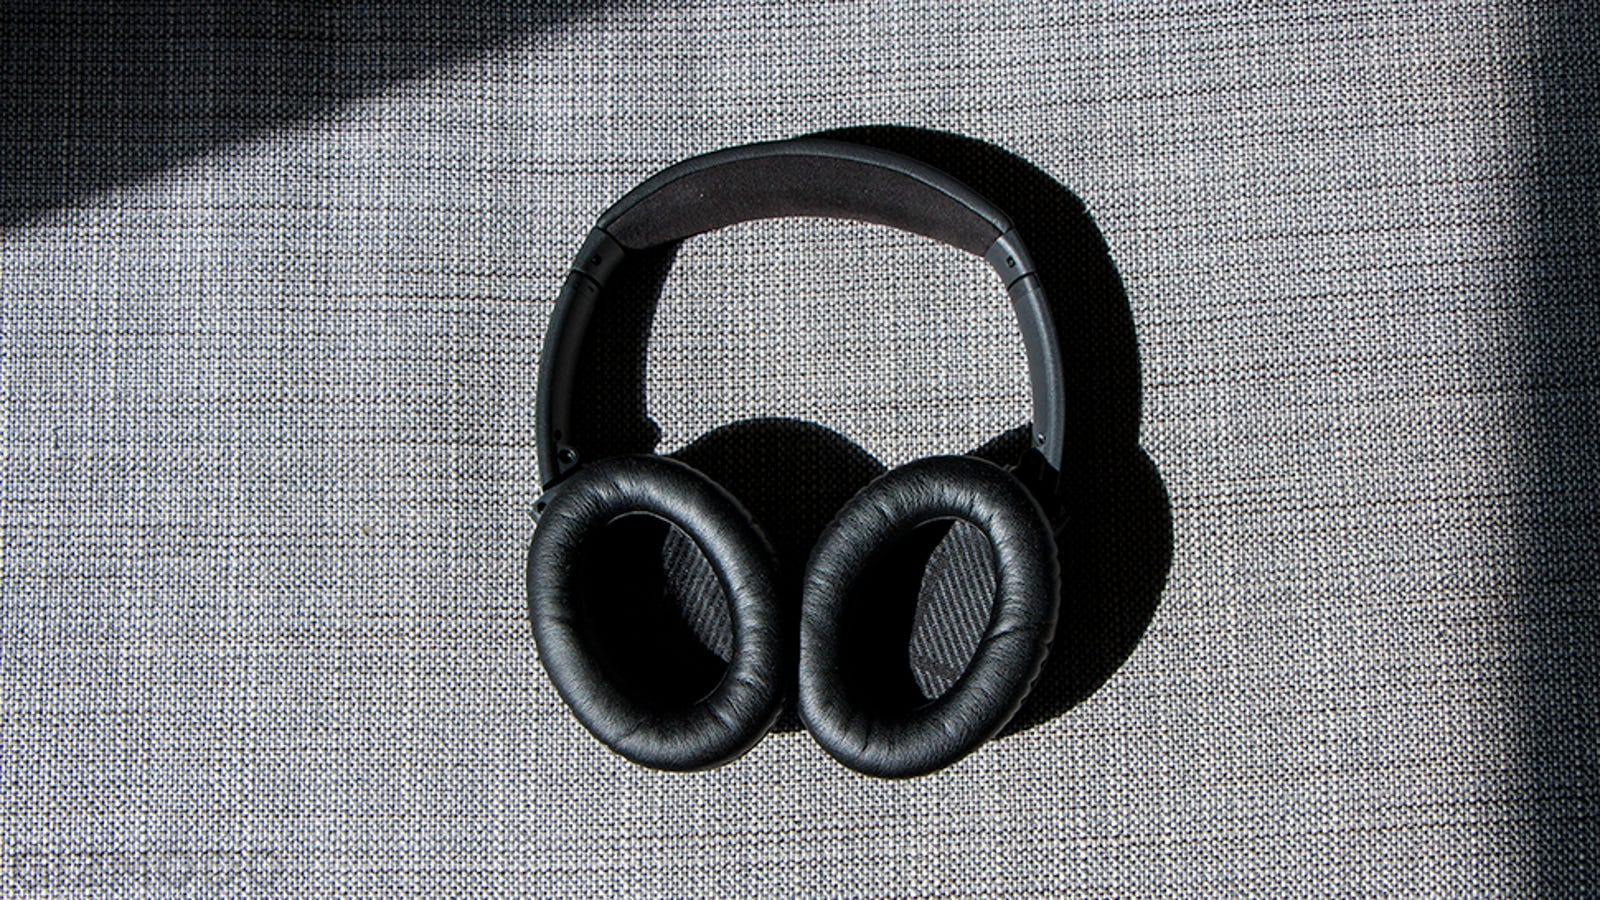 headphone headband cushion - Bluetooth Has Finally Outsold Wired Headphones